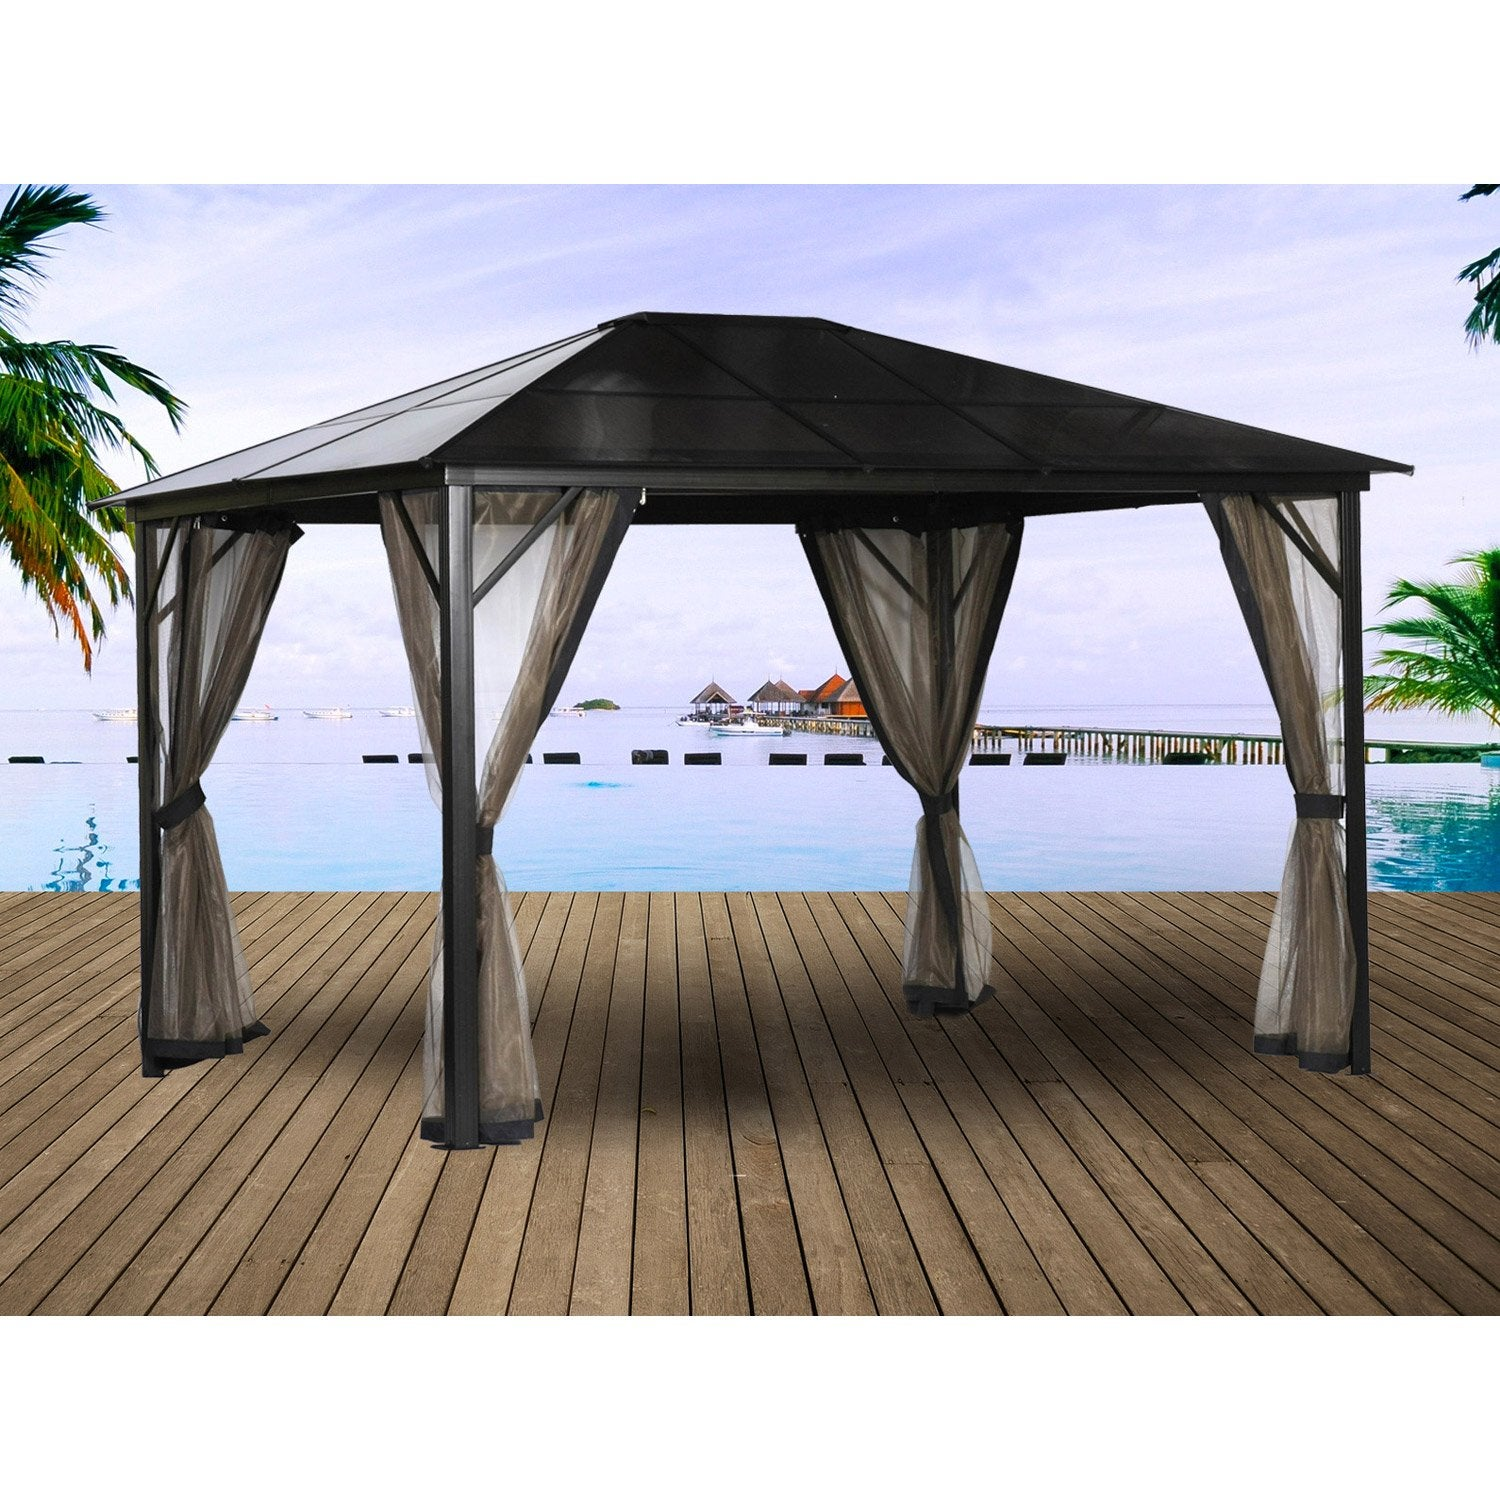 Table de jardin aluminium leroy merlin valdiz for Leroy merlin table jardin